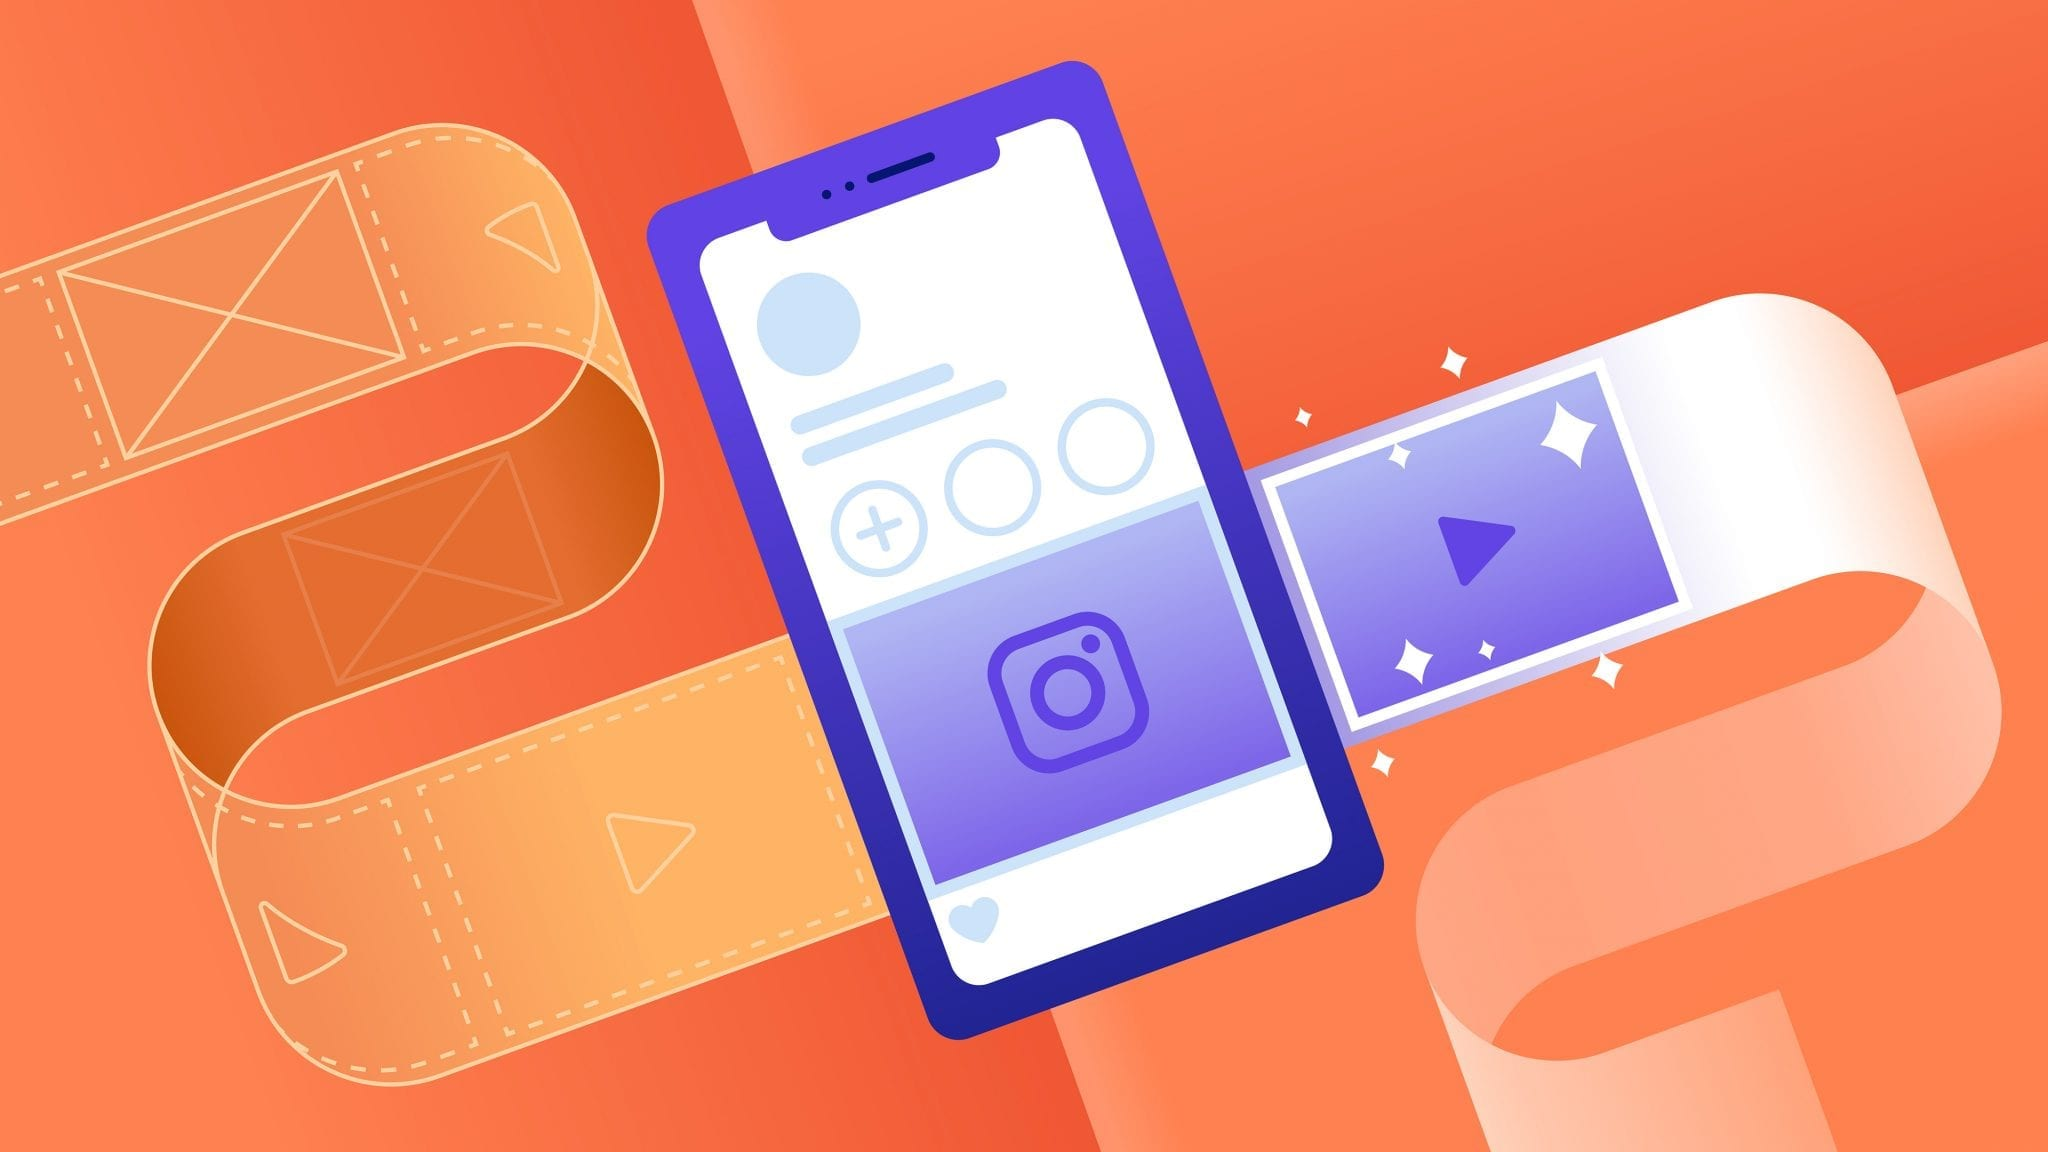 the complete guide to igtv dimensions best practices and creation apps social media today How To Make Instagram Videos Rev